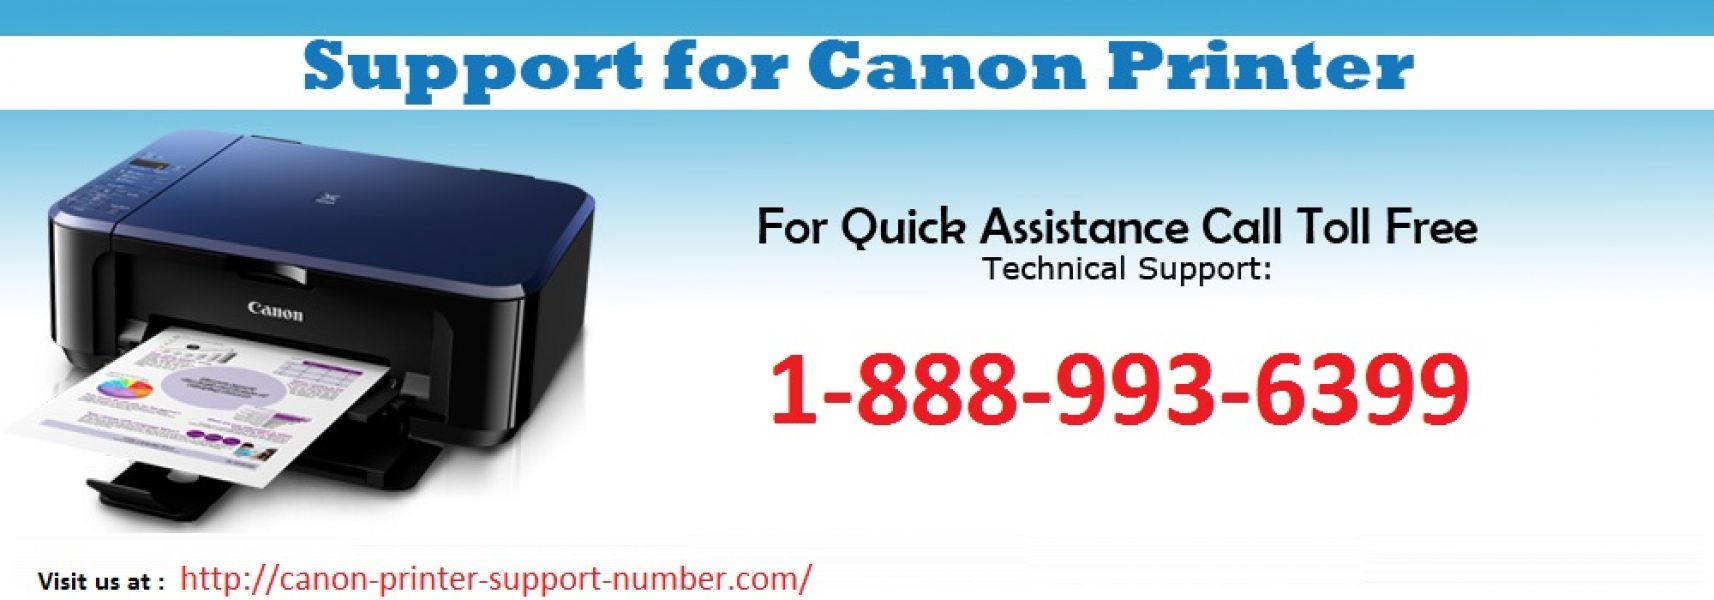 Canon Printer Support 1-888-993-6399